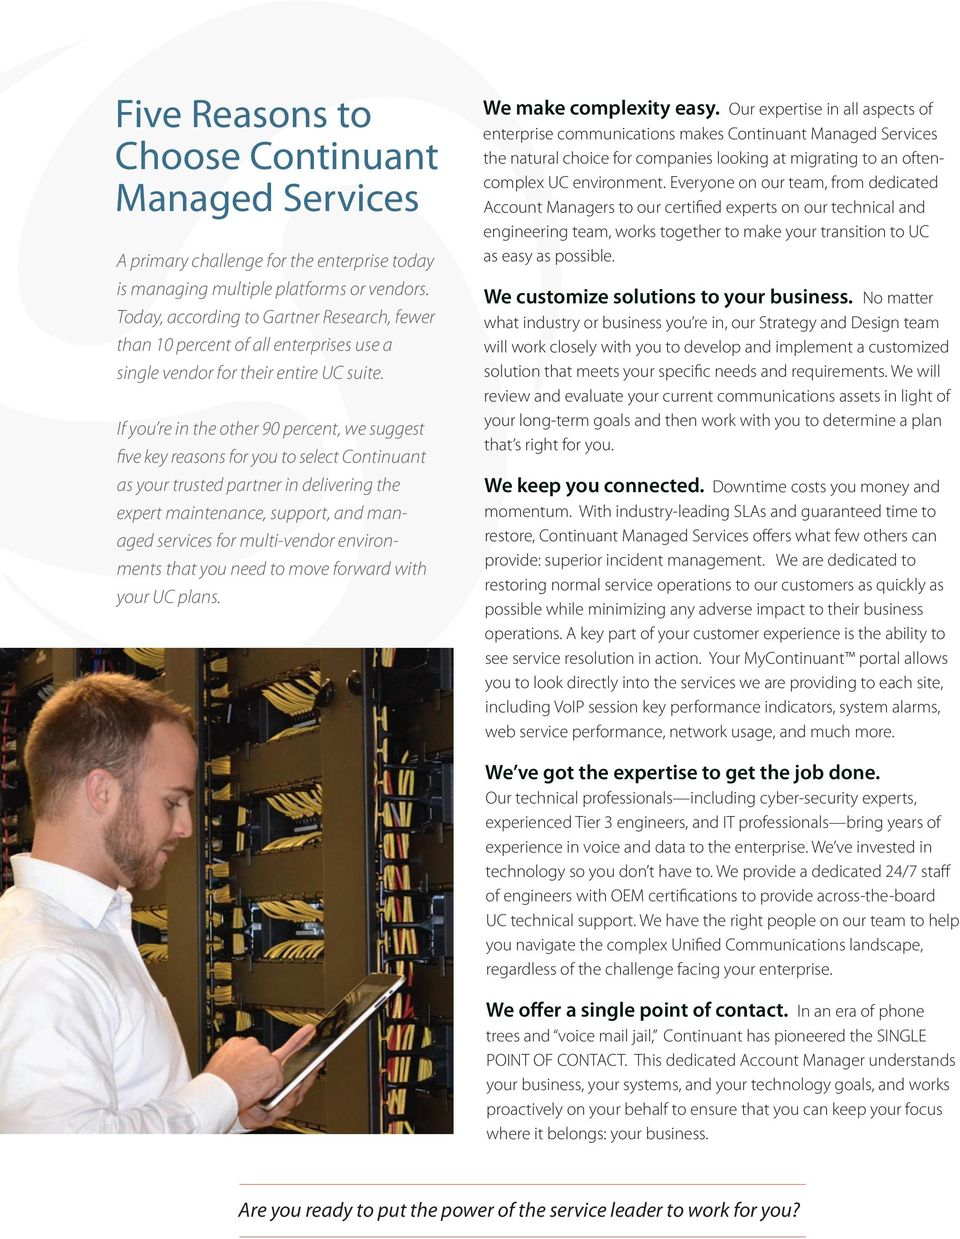 If you re in the other 90 percent, we suggest five key reasons for you to select Continuant as your trusted partner in delivering the expert maintenance, support, and managed services for